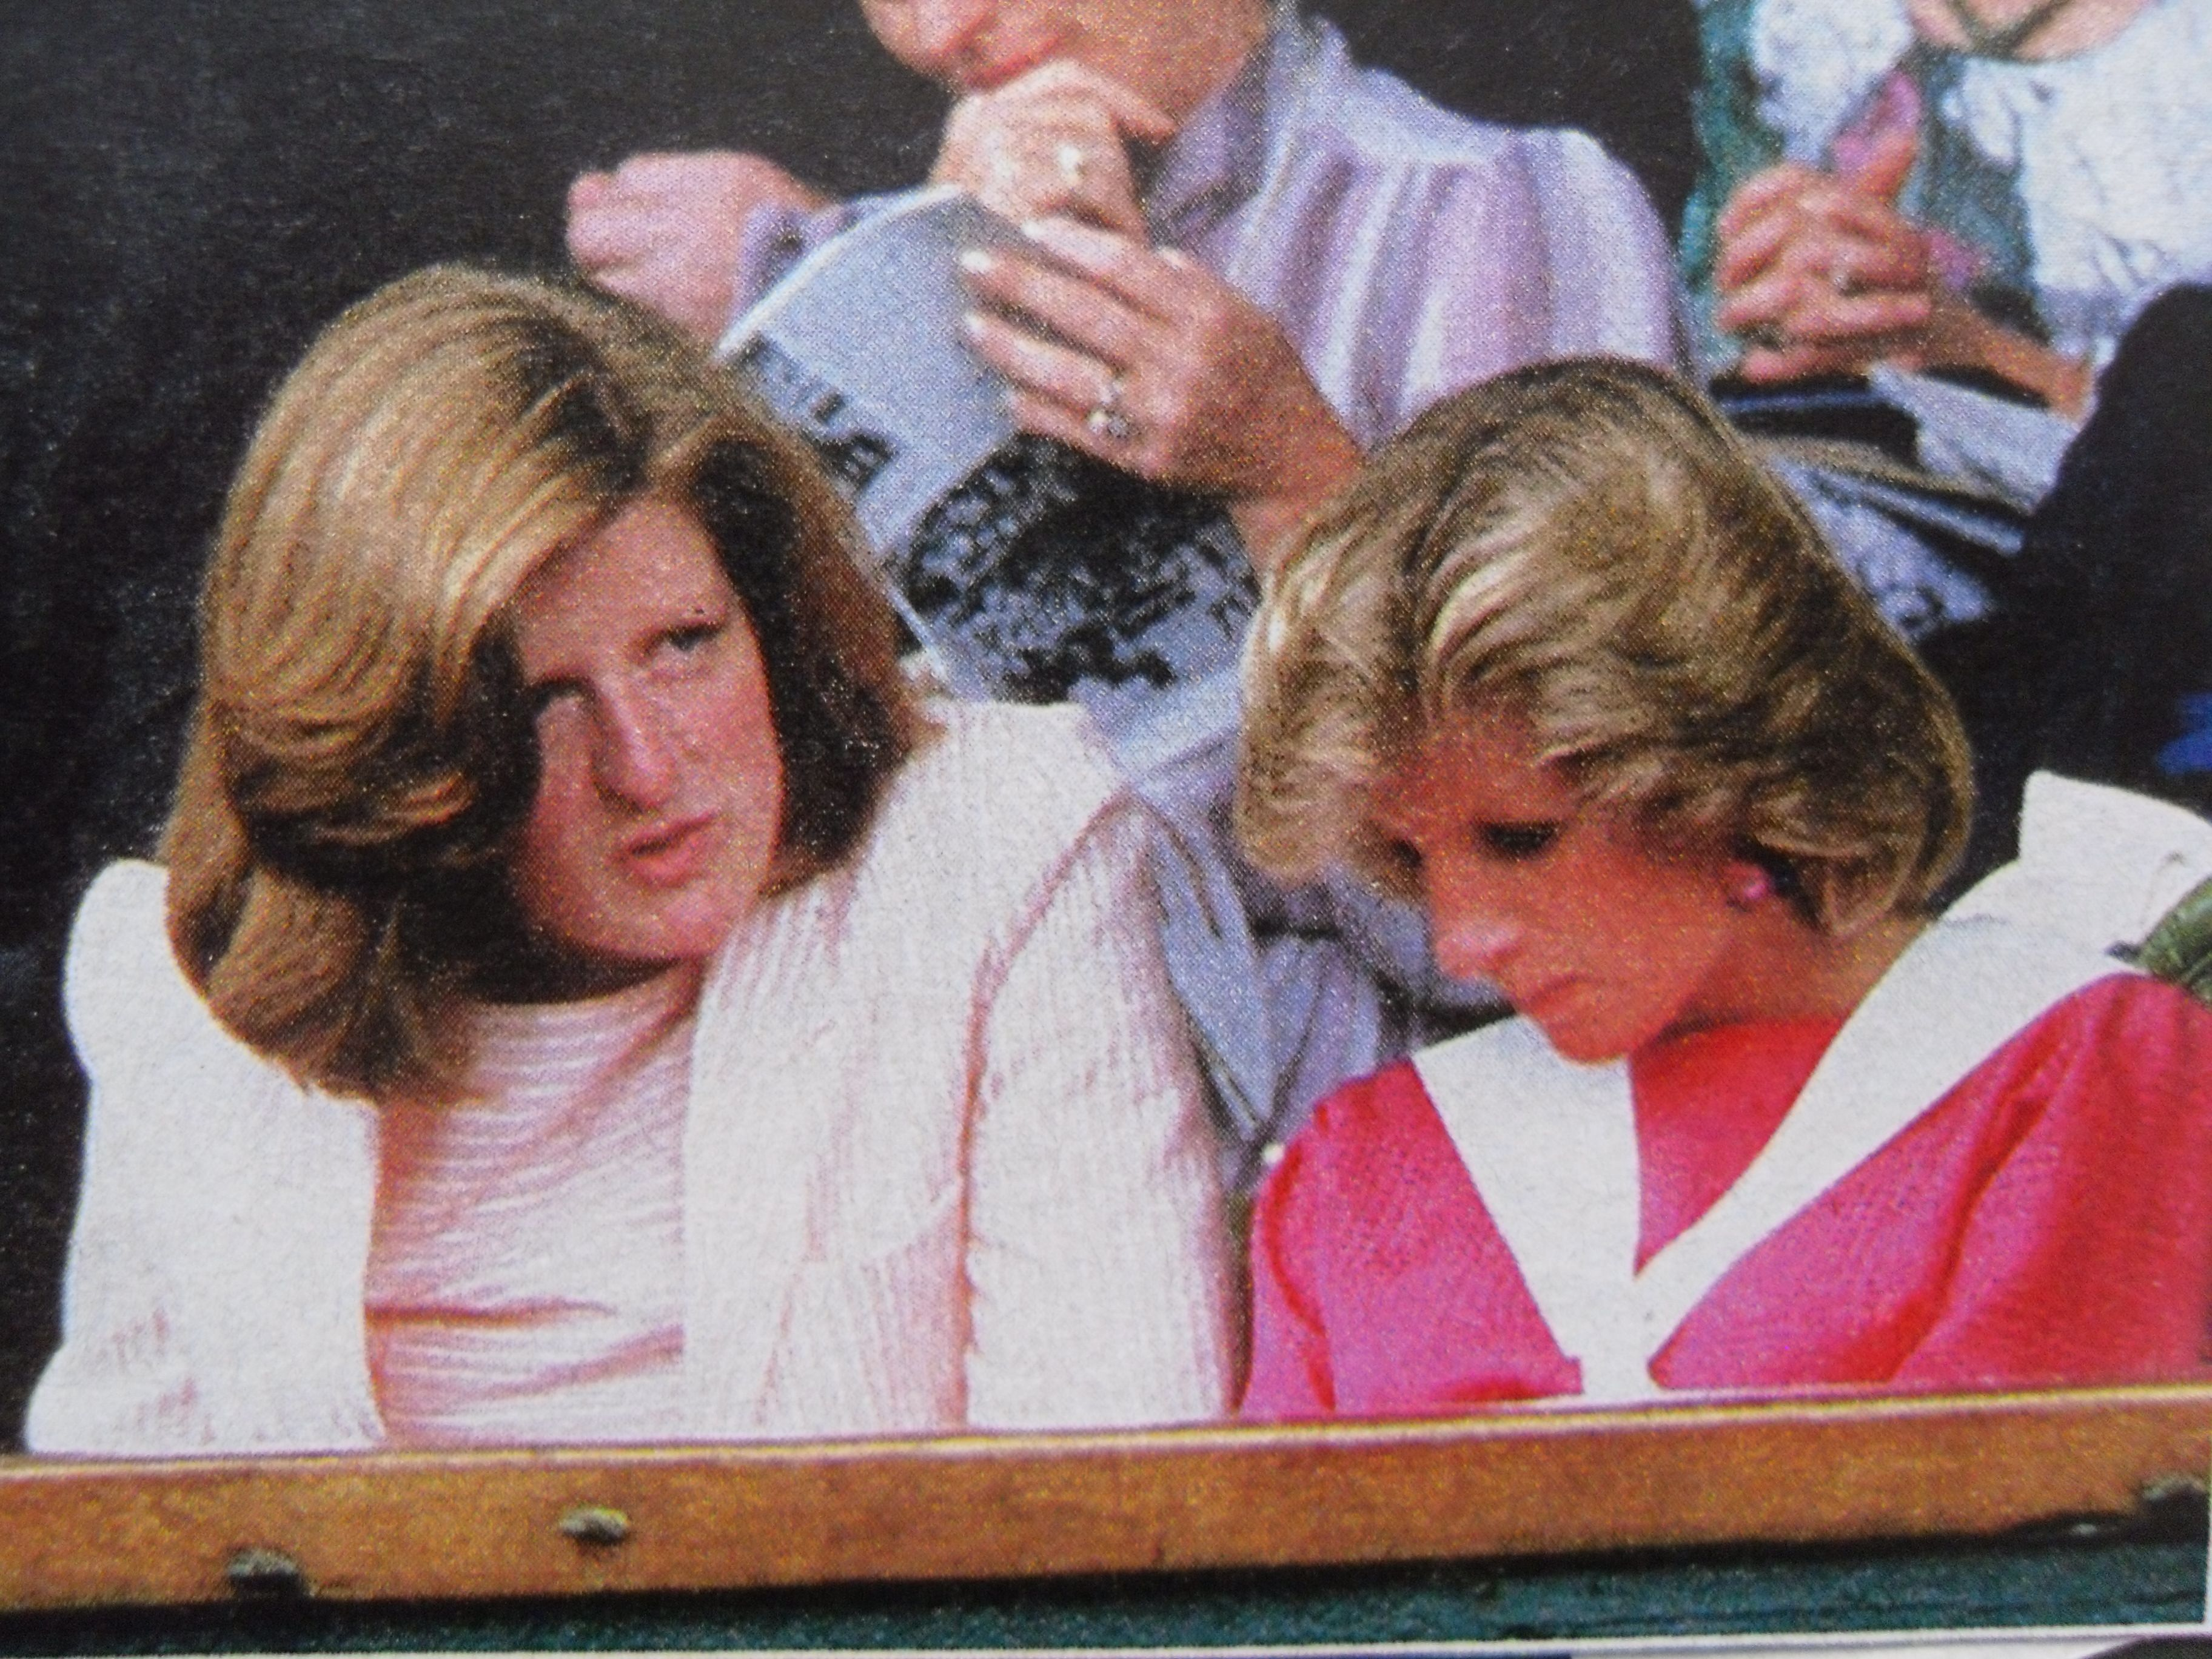 July 4, 1984: Princess Diana at Wimbledon with her sister, Lady Jane Fellowes, to watch the Ladies' Singles Quarterfinals between Chris Evert Lloyd and Carina Karlsson.